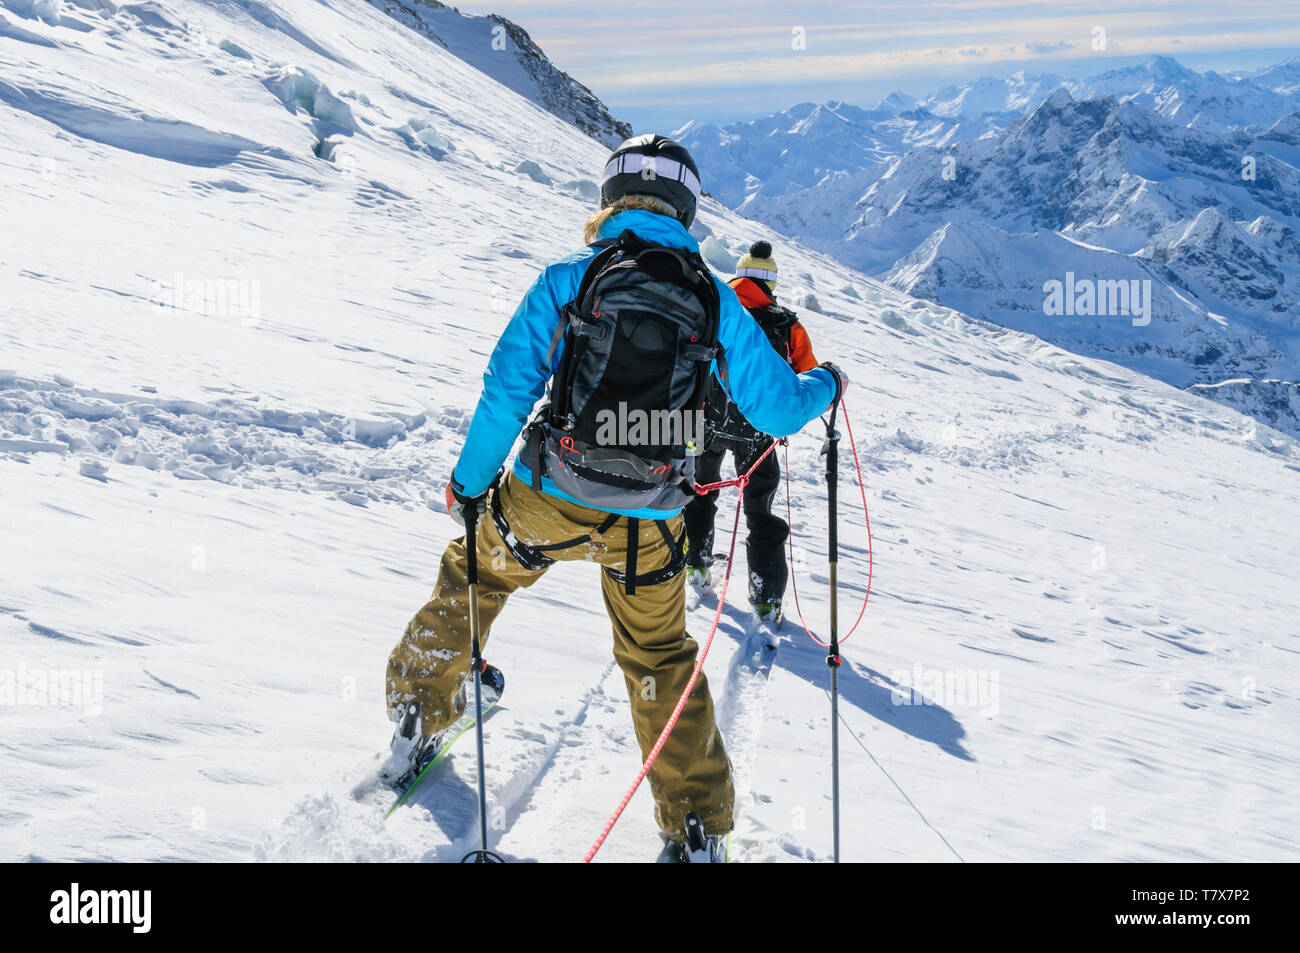 Rope team skiing with a mountain guide in dangerous glacier area - Stock Image